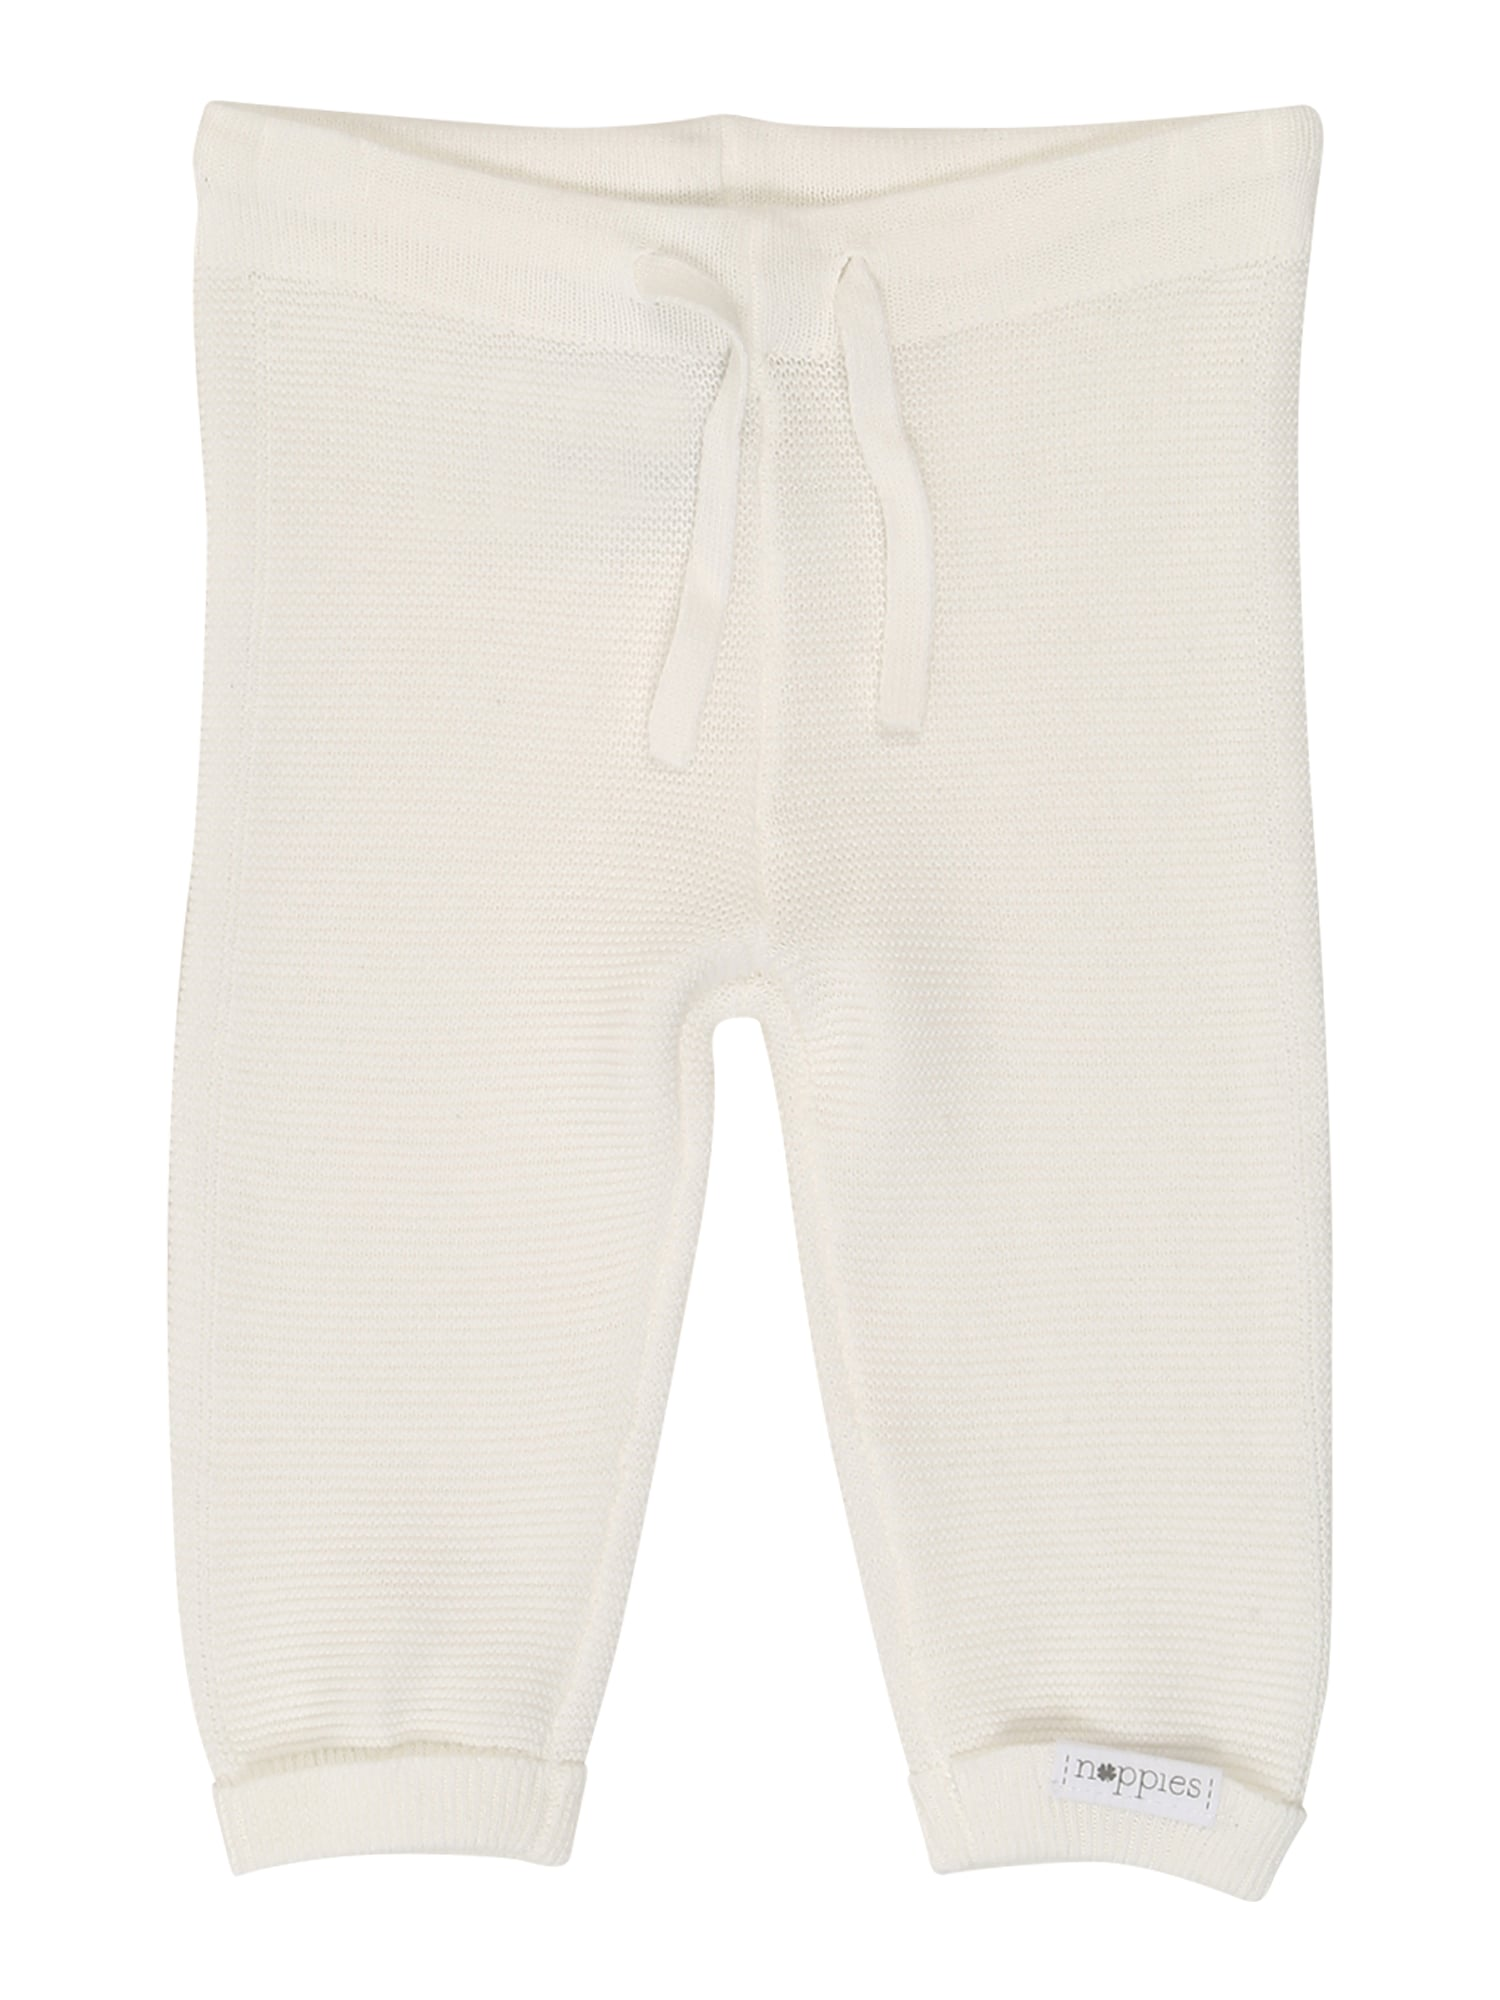 Noppies Kelnės 'U Pants Knit Reg Grover' balta